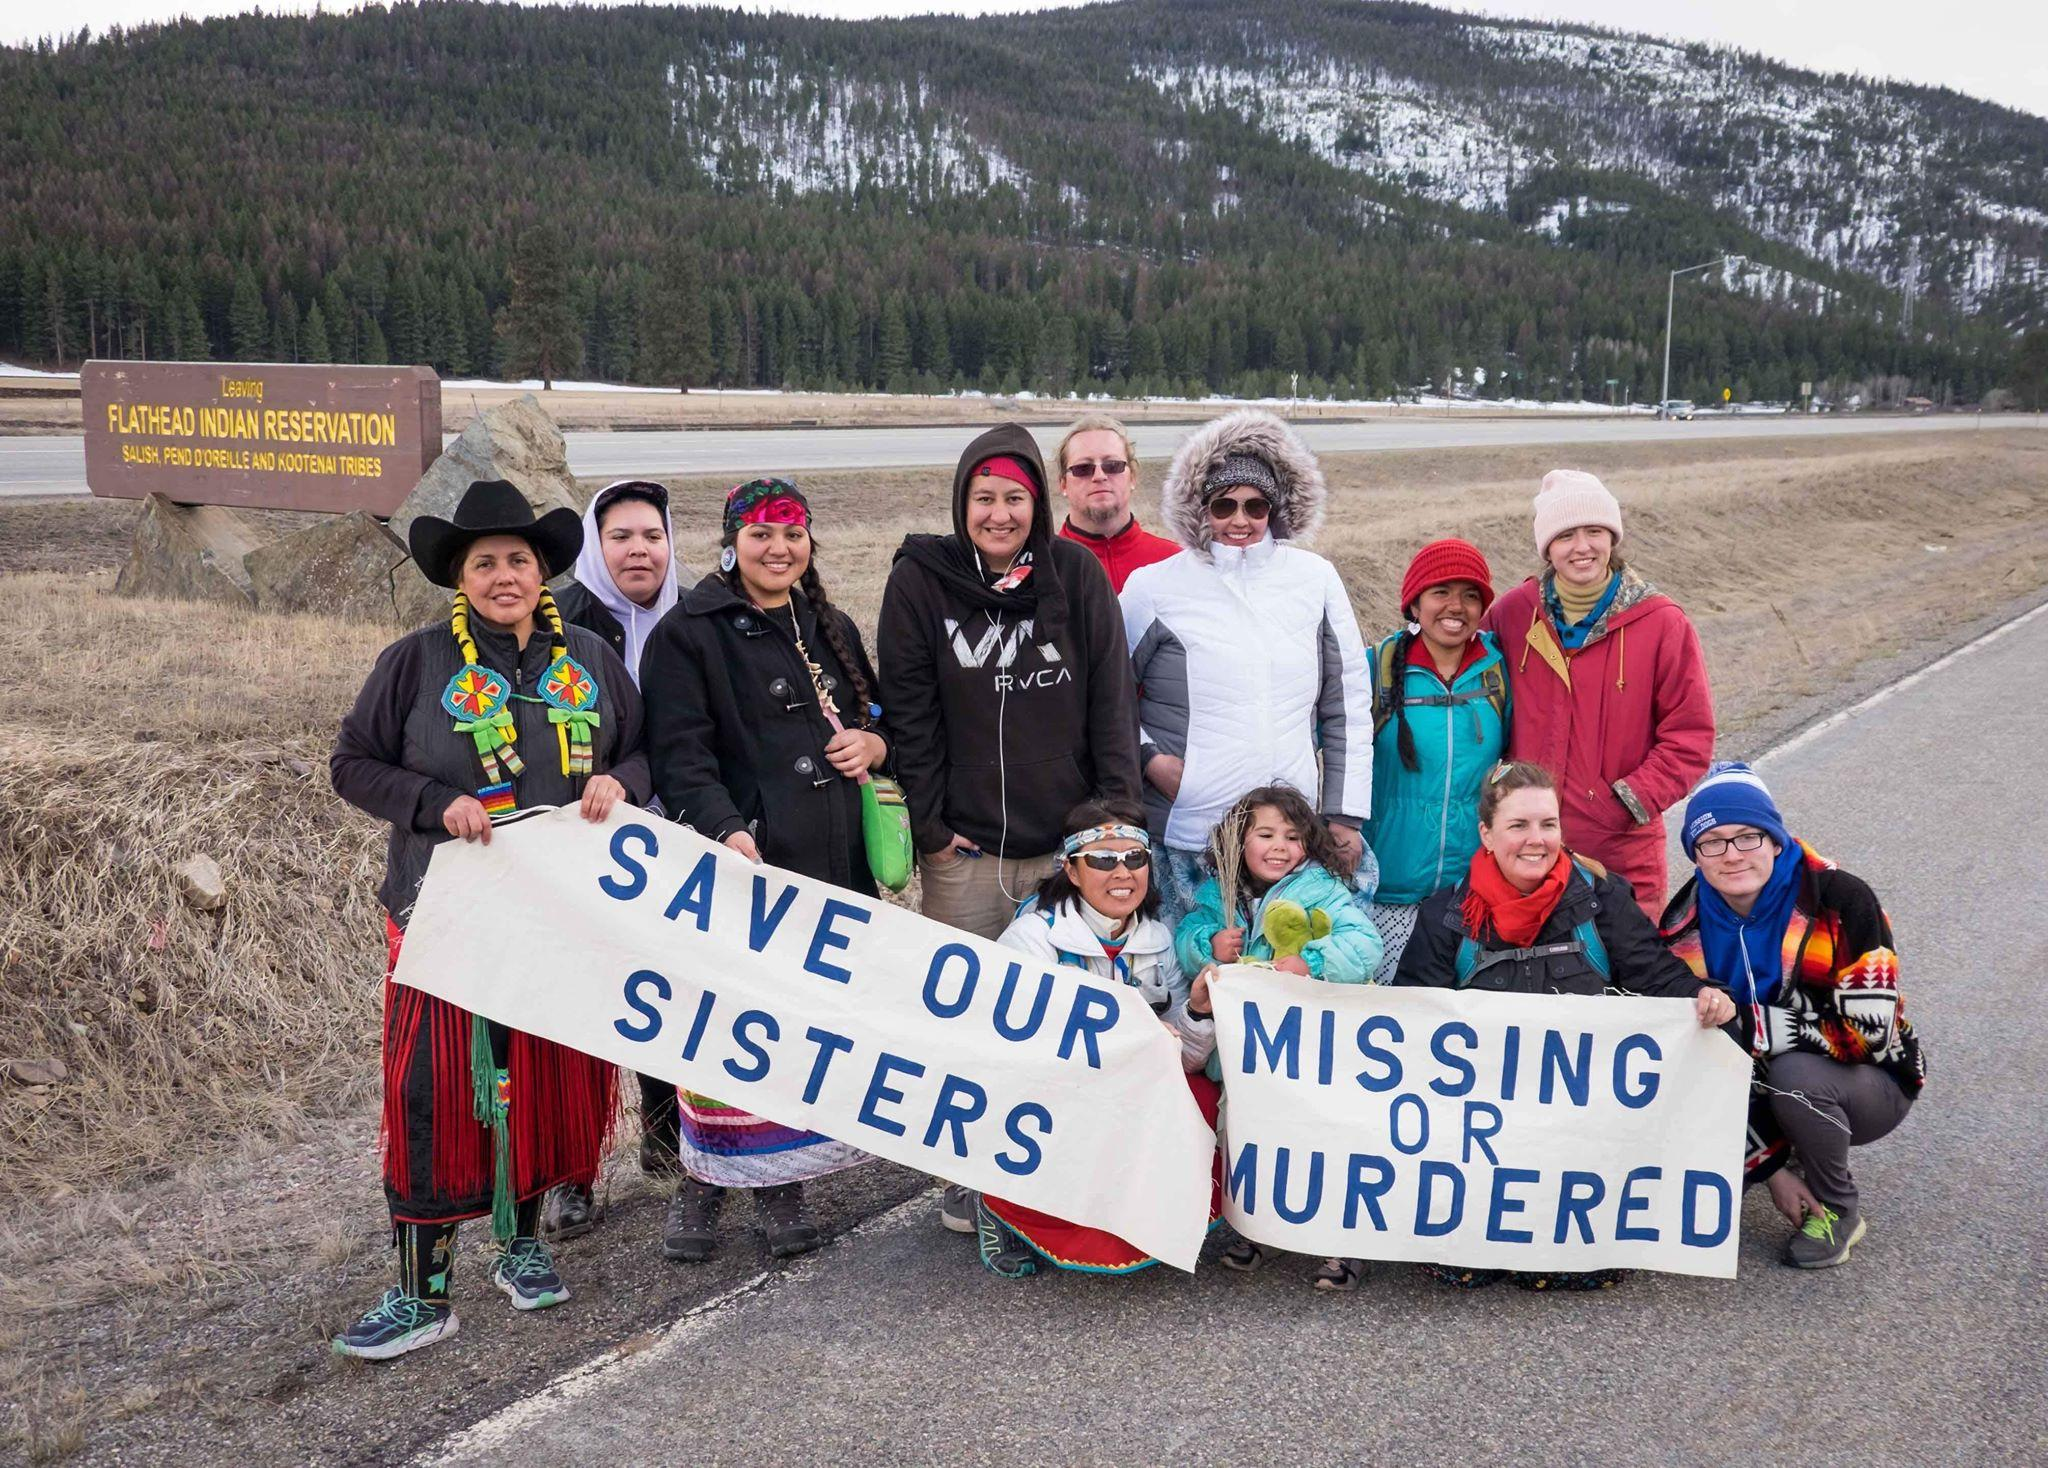 Forgotten Women: The conversation of murdered and missing